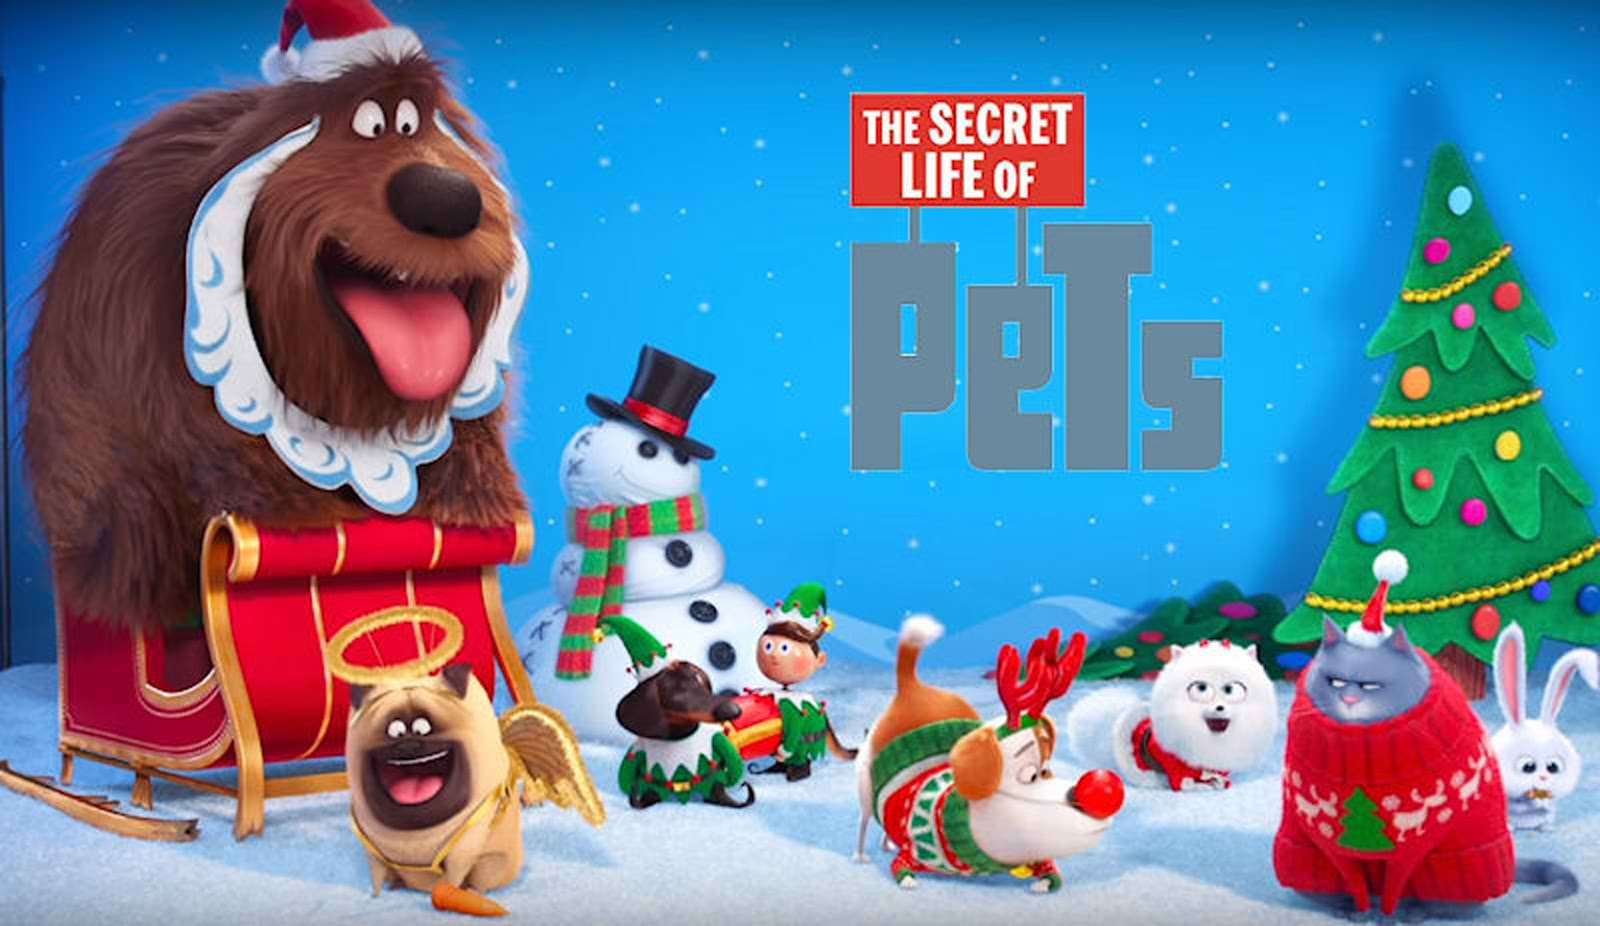 lakwatsera lovers angry birds movie secret life of pets share christmas videos. Black Bedroom Furniture Sets. Home Design Ideas